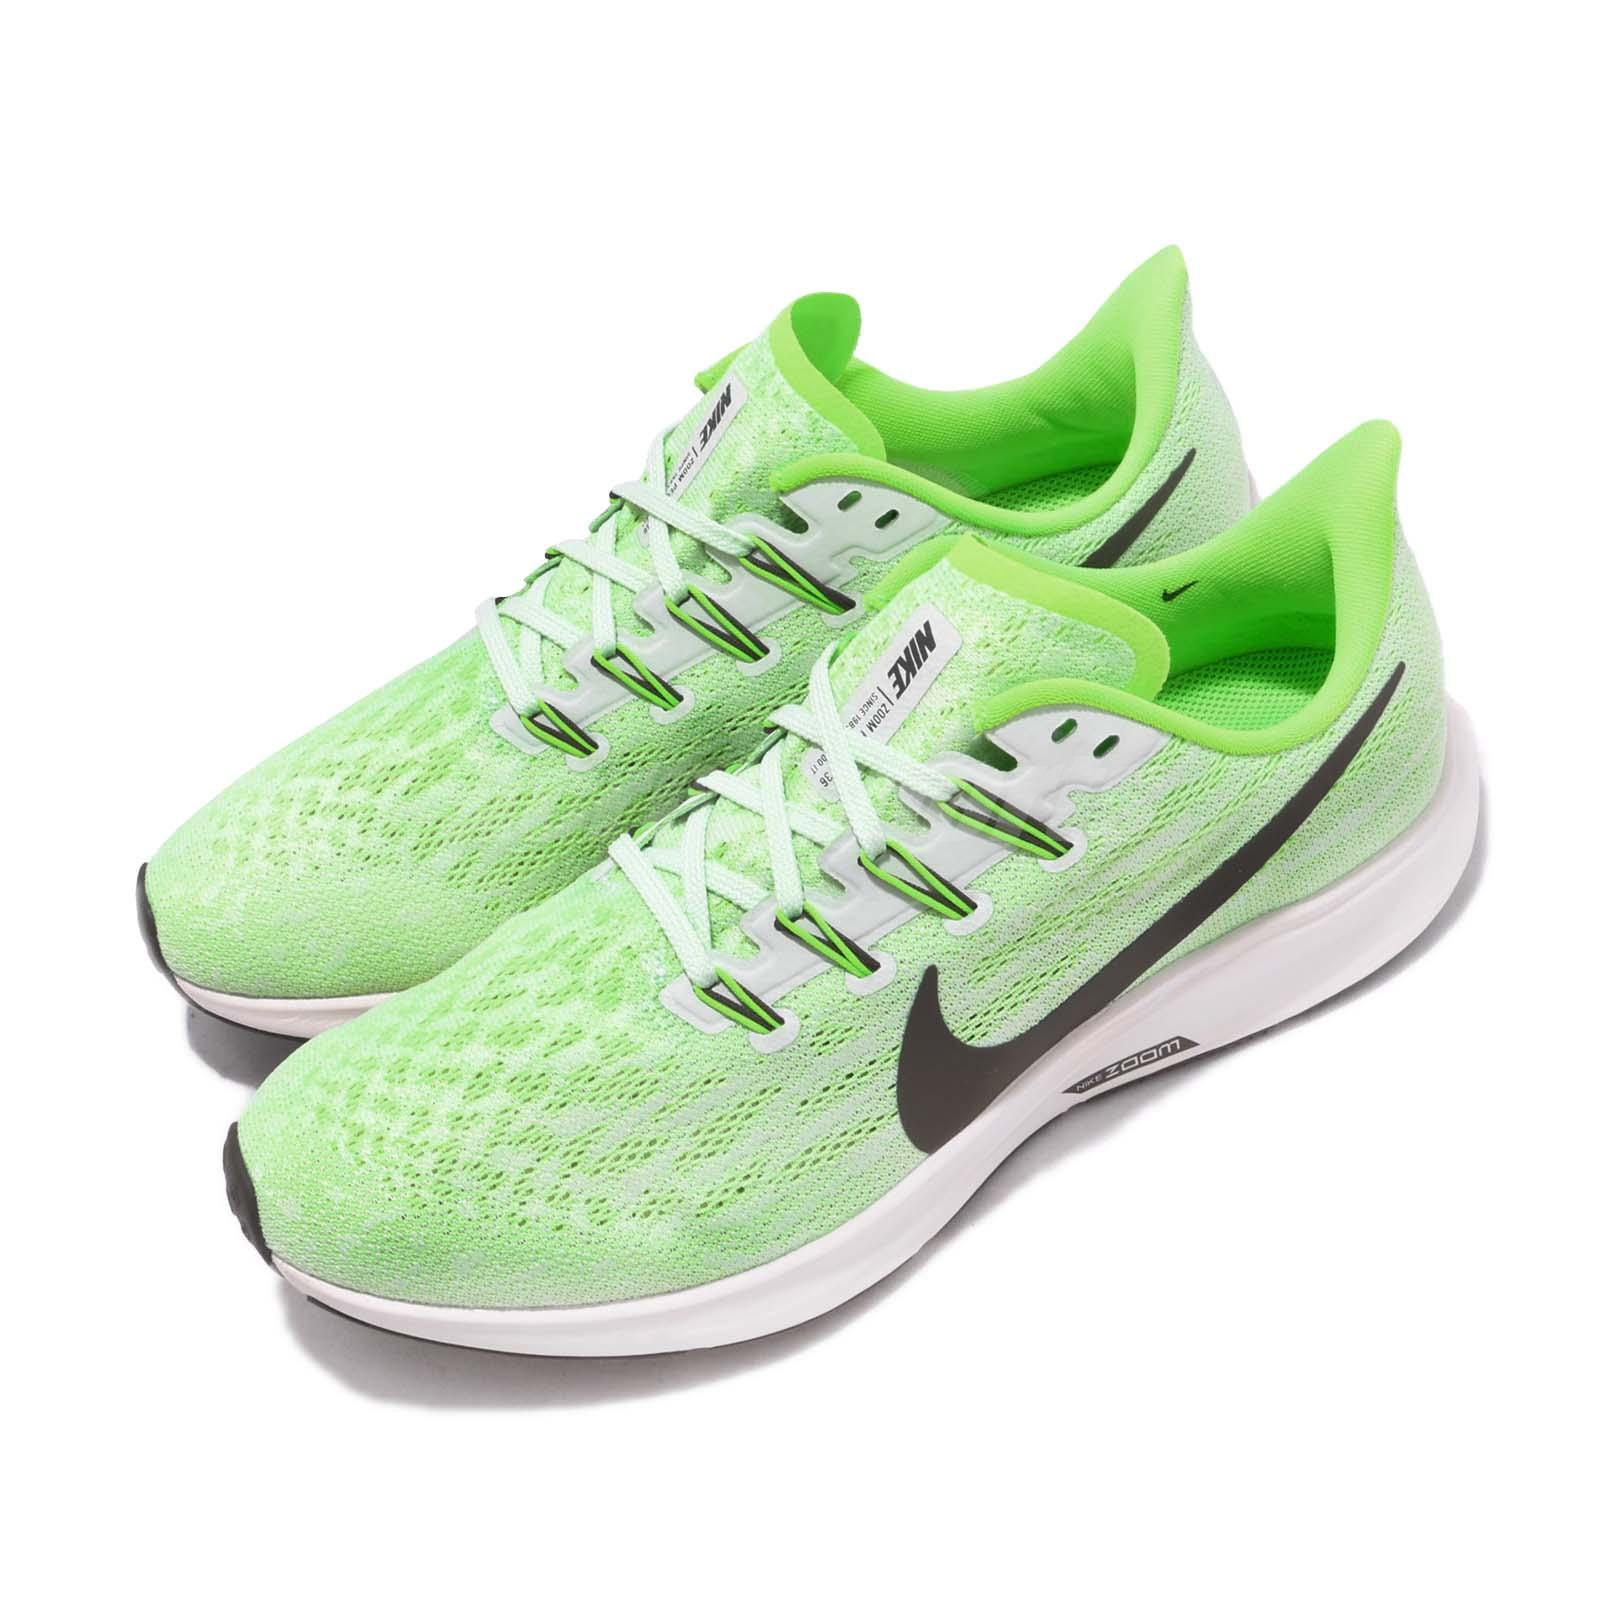 Nike Zoom Grey And Green Details About Nike Air Zoom Pegasus 36 Green Grey White Men Running Shoes Sneakers Aq2203 003